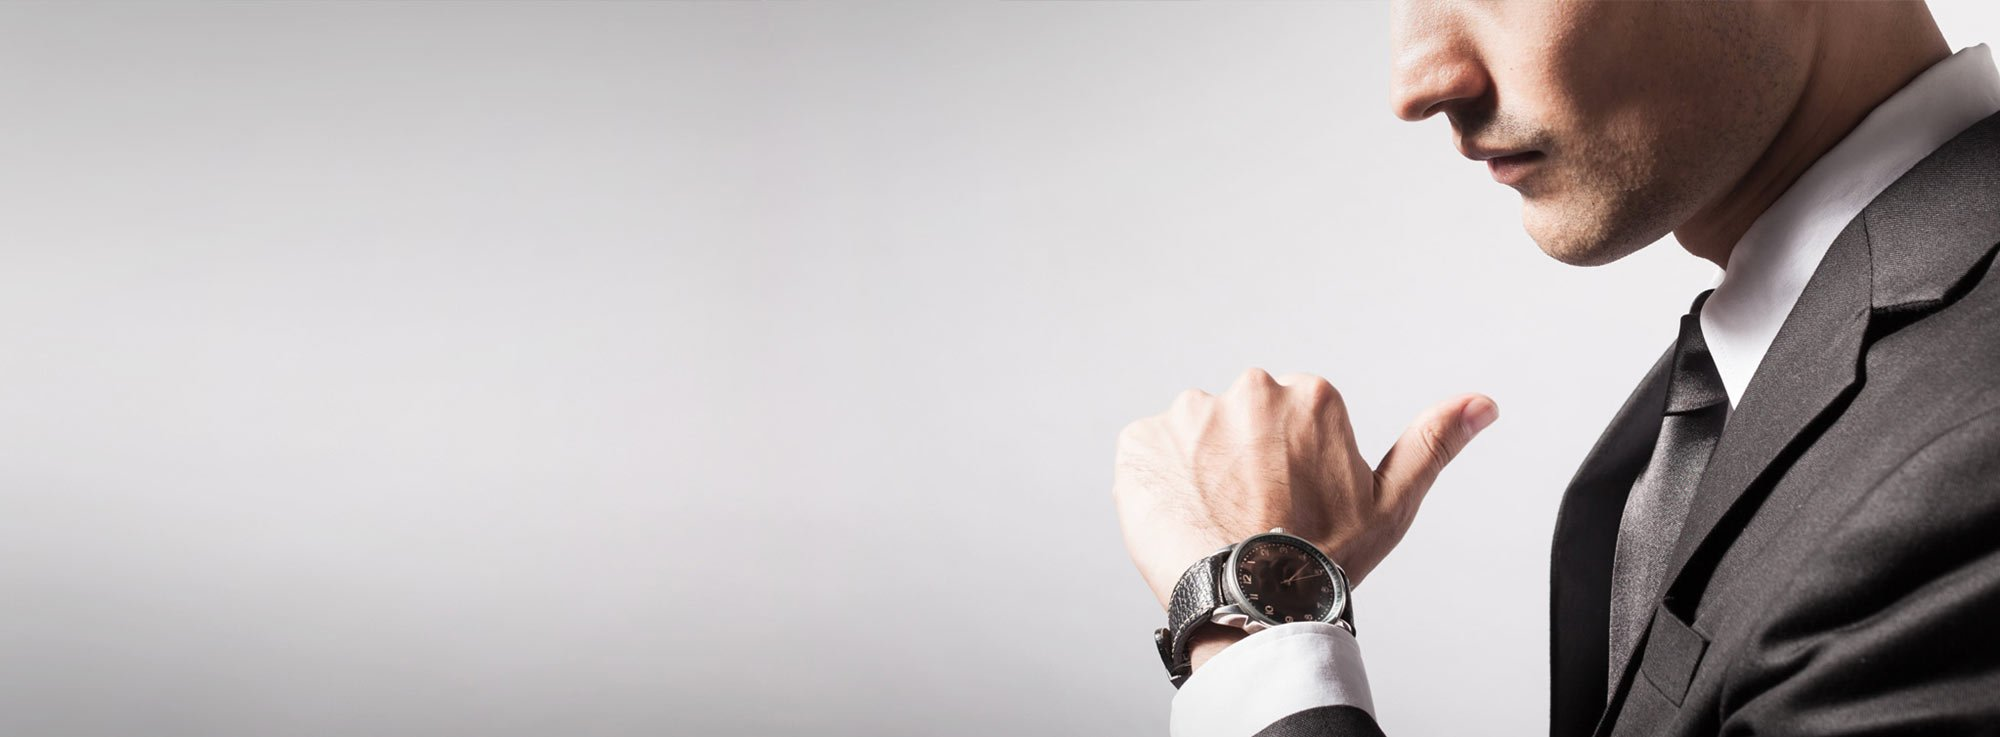 Man with Luxury Watch